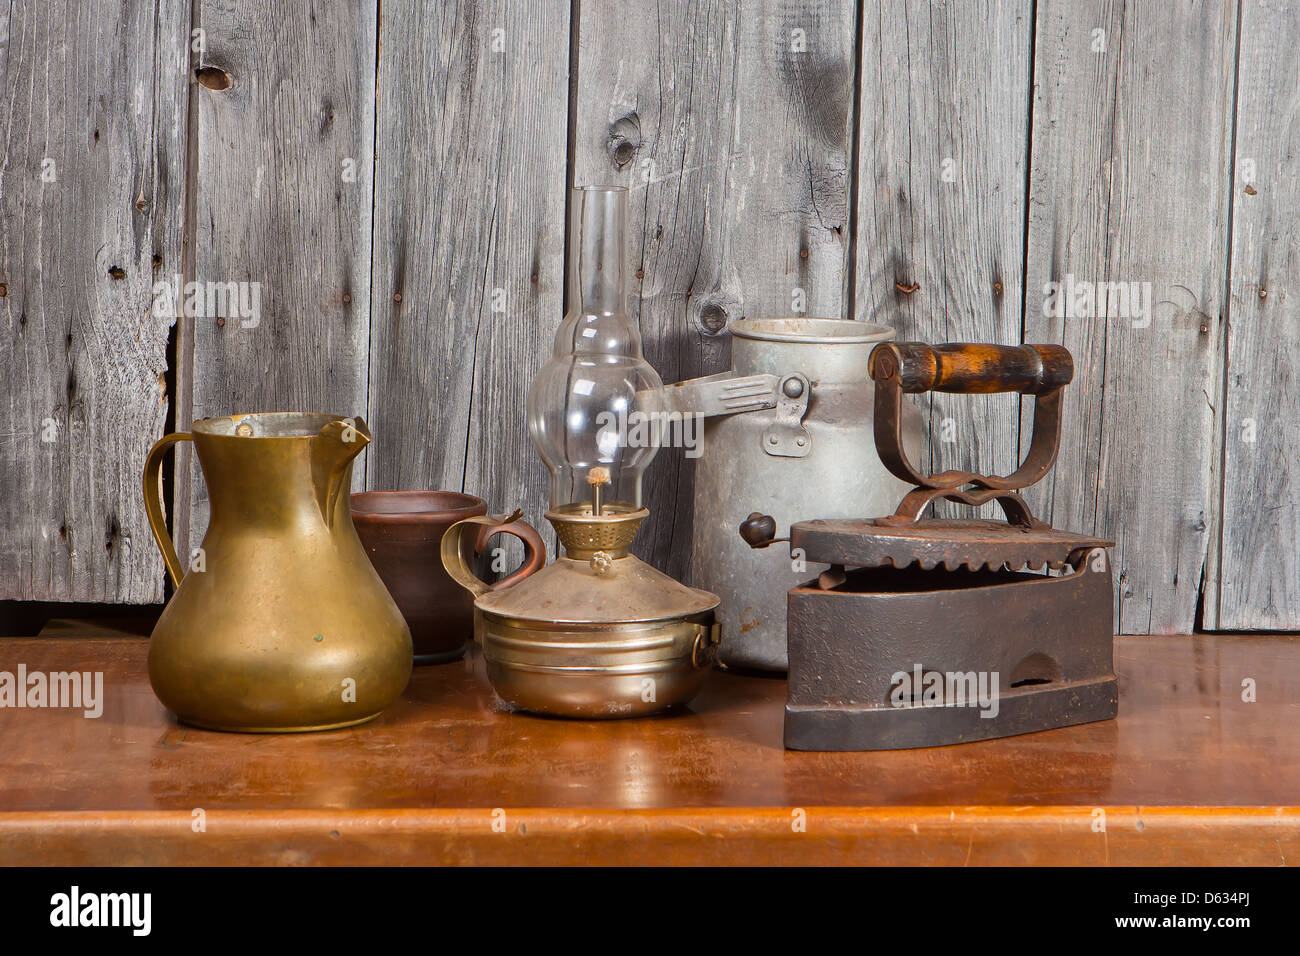 Still-life with old things - Stock Image